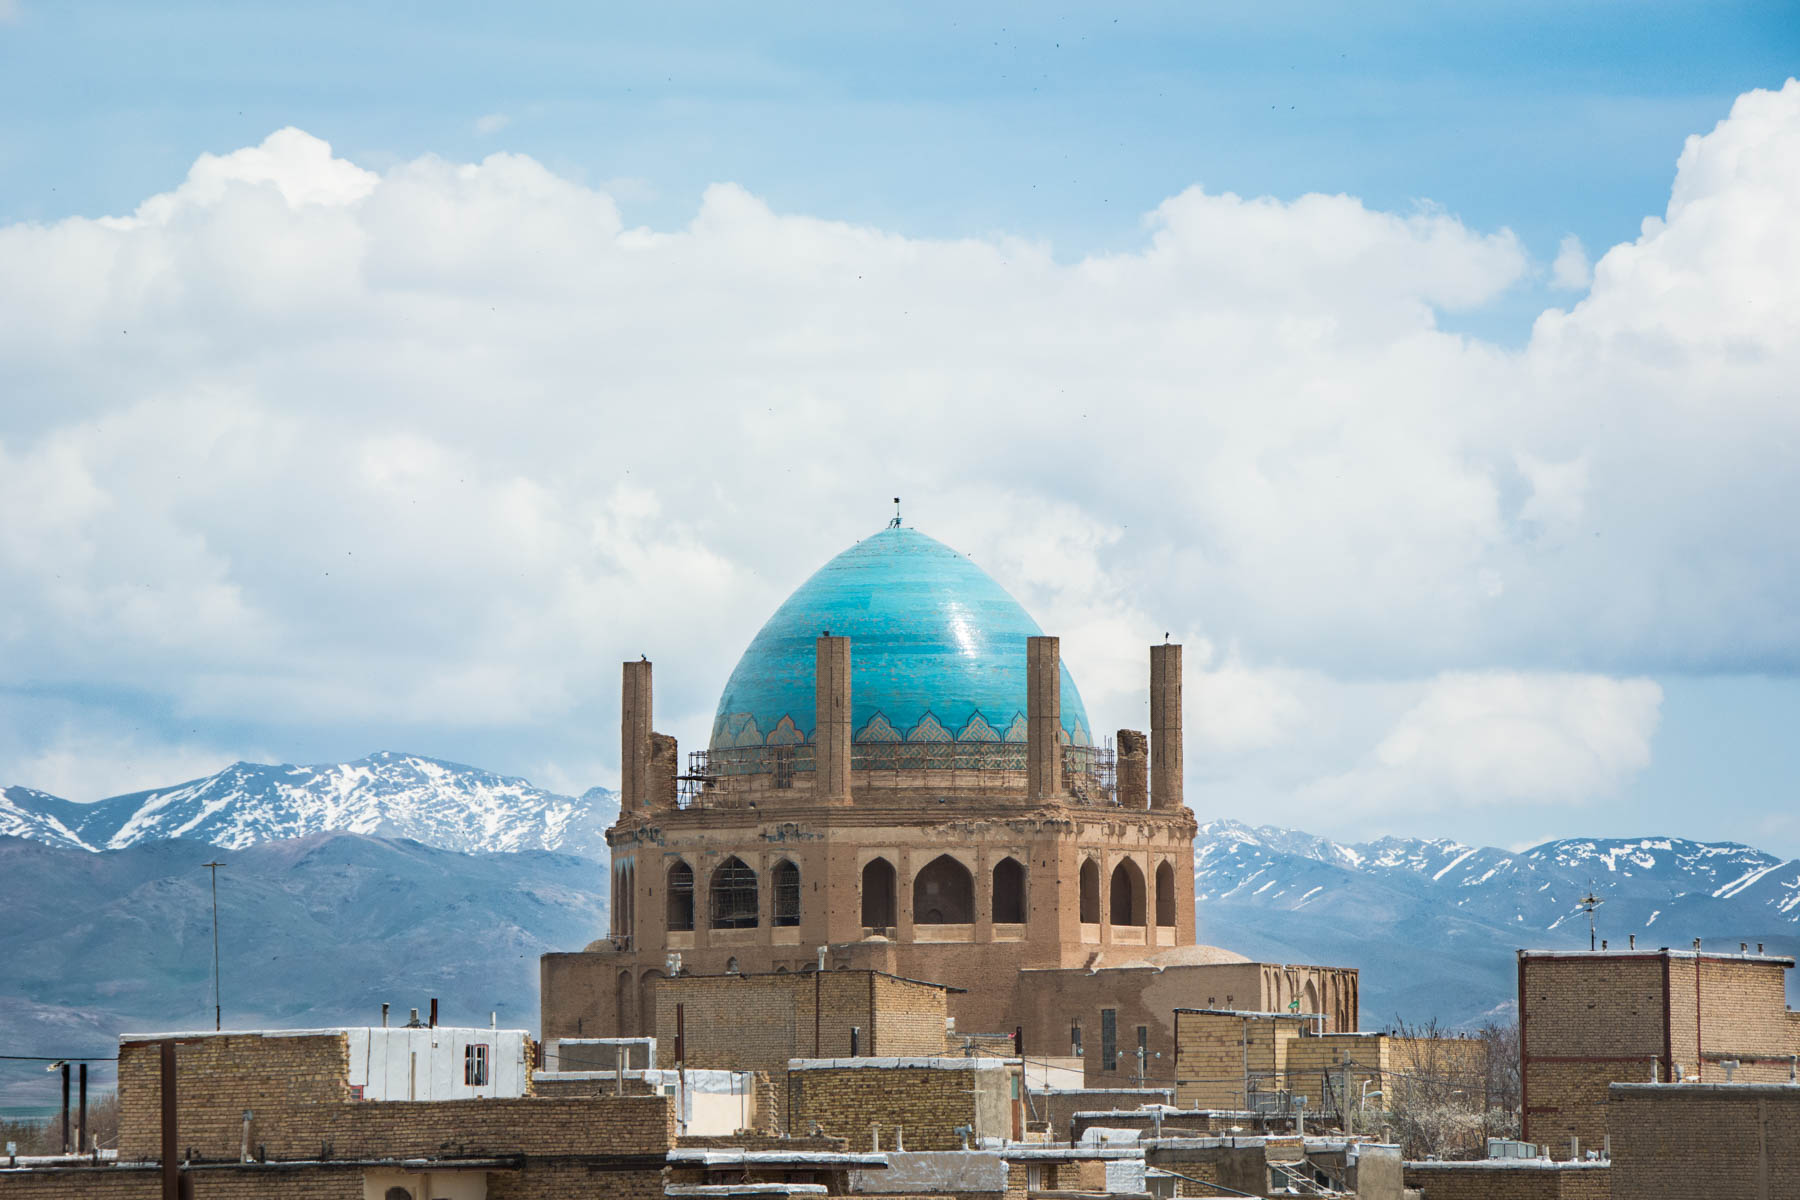 Soltaniyeh dome, a famous mausoleum in Iran